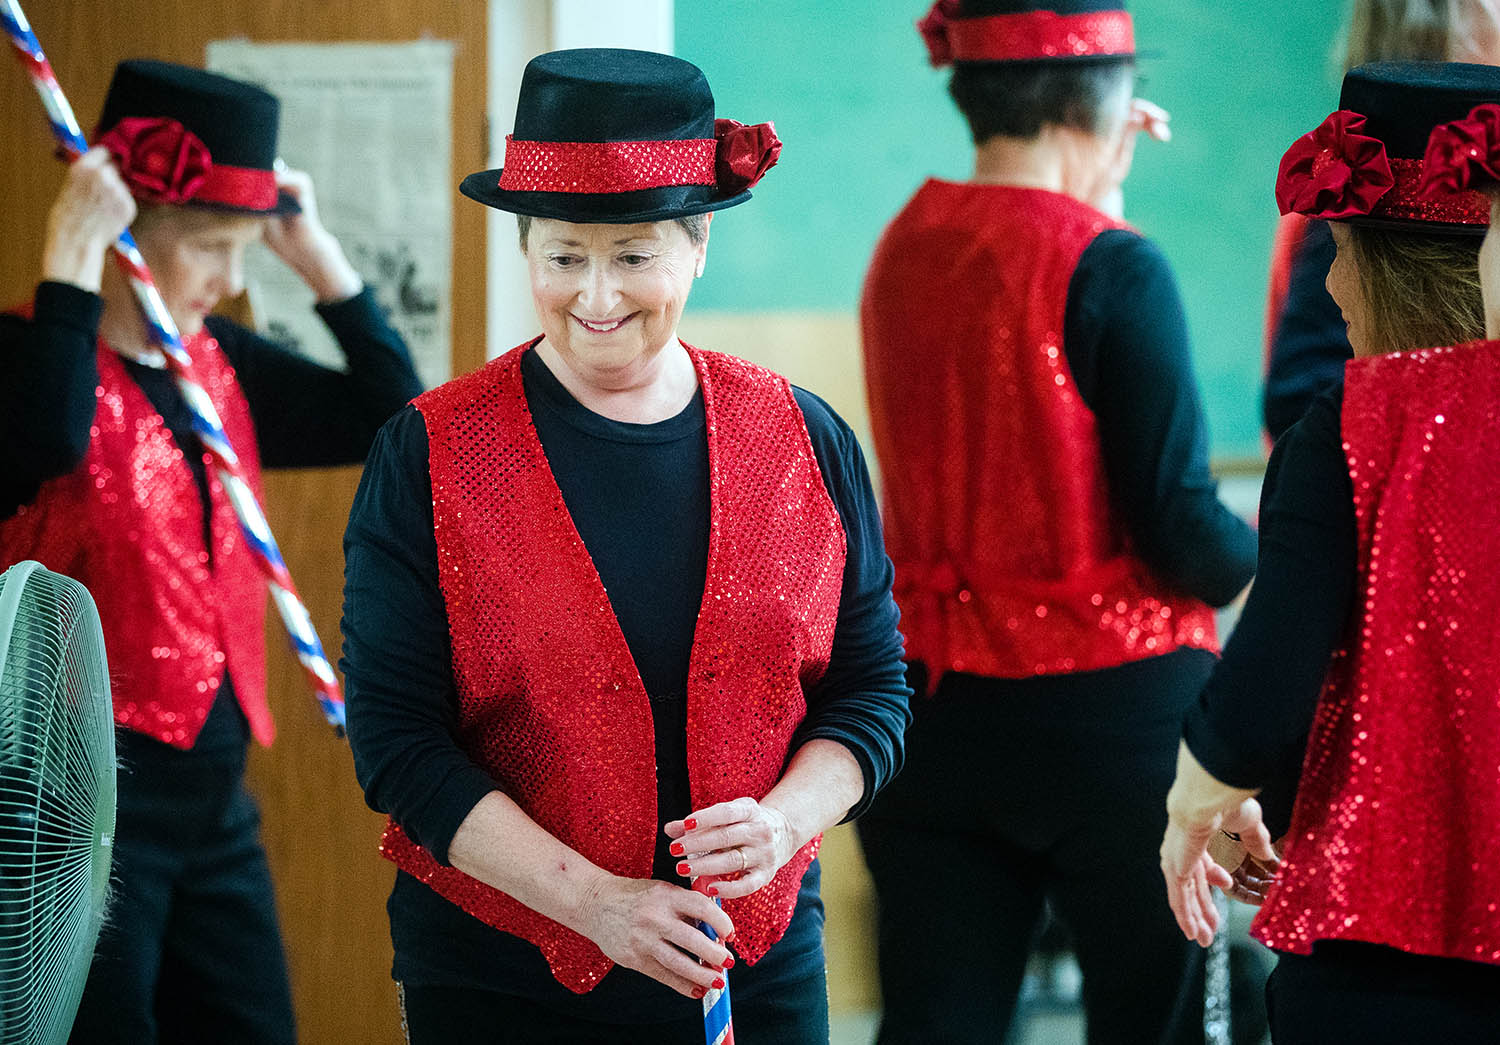 Arlene Cooney and other members of the Tip Top Tappers prepare to perform their Memorial Day tribute at the Senior Center Friday, May 24, 2019. The group performs regularly and practices twice a week at the center. New members are welcome to join them at 10 a.m. for their Thursday practice. [Ted Schurter/The State Journal-Register]